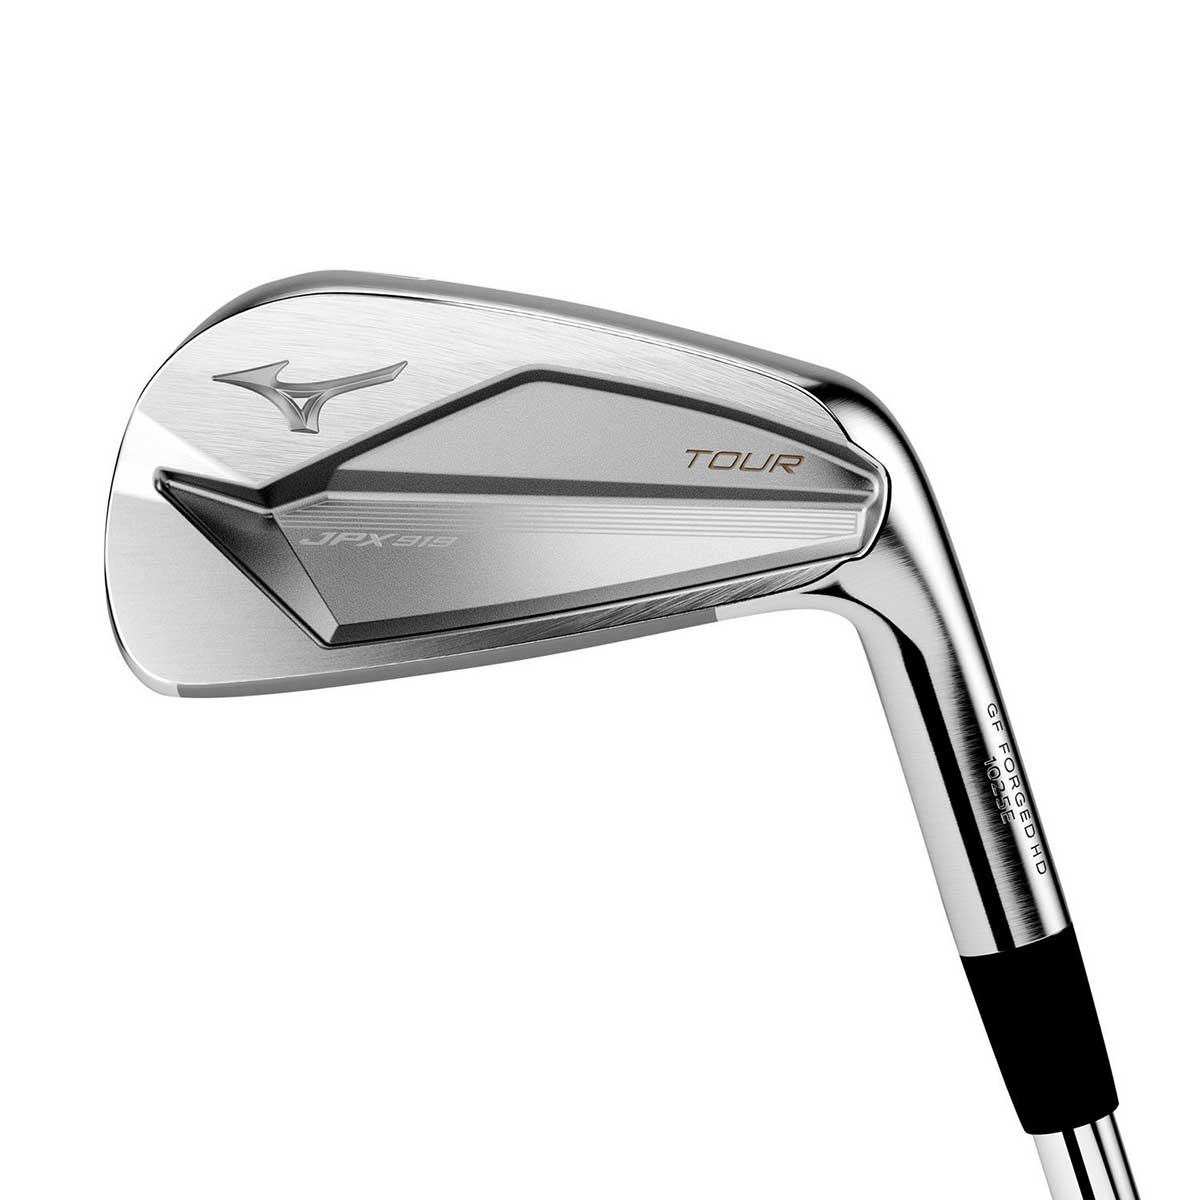 who plays mizuno irons on tour